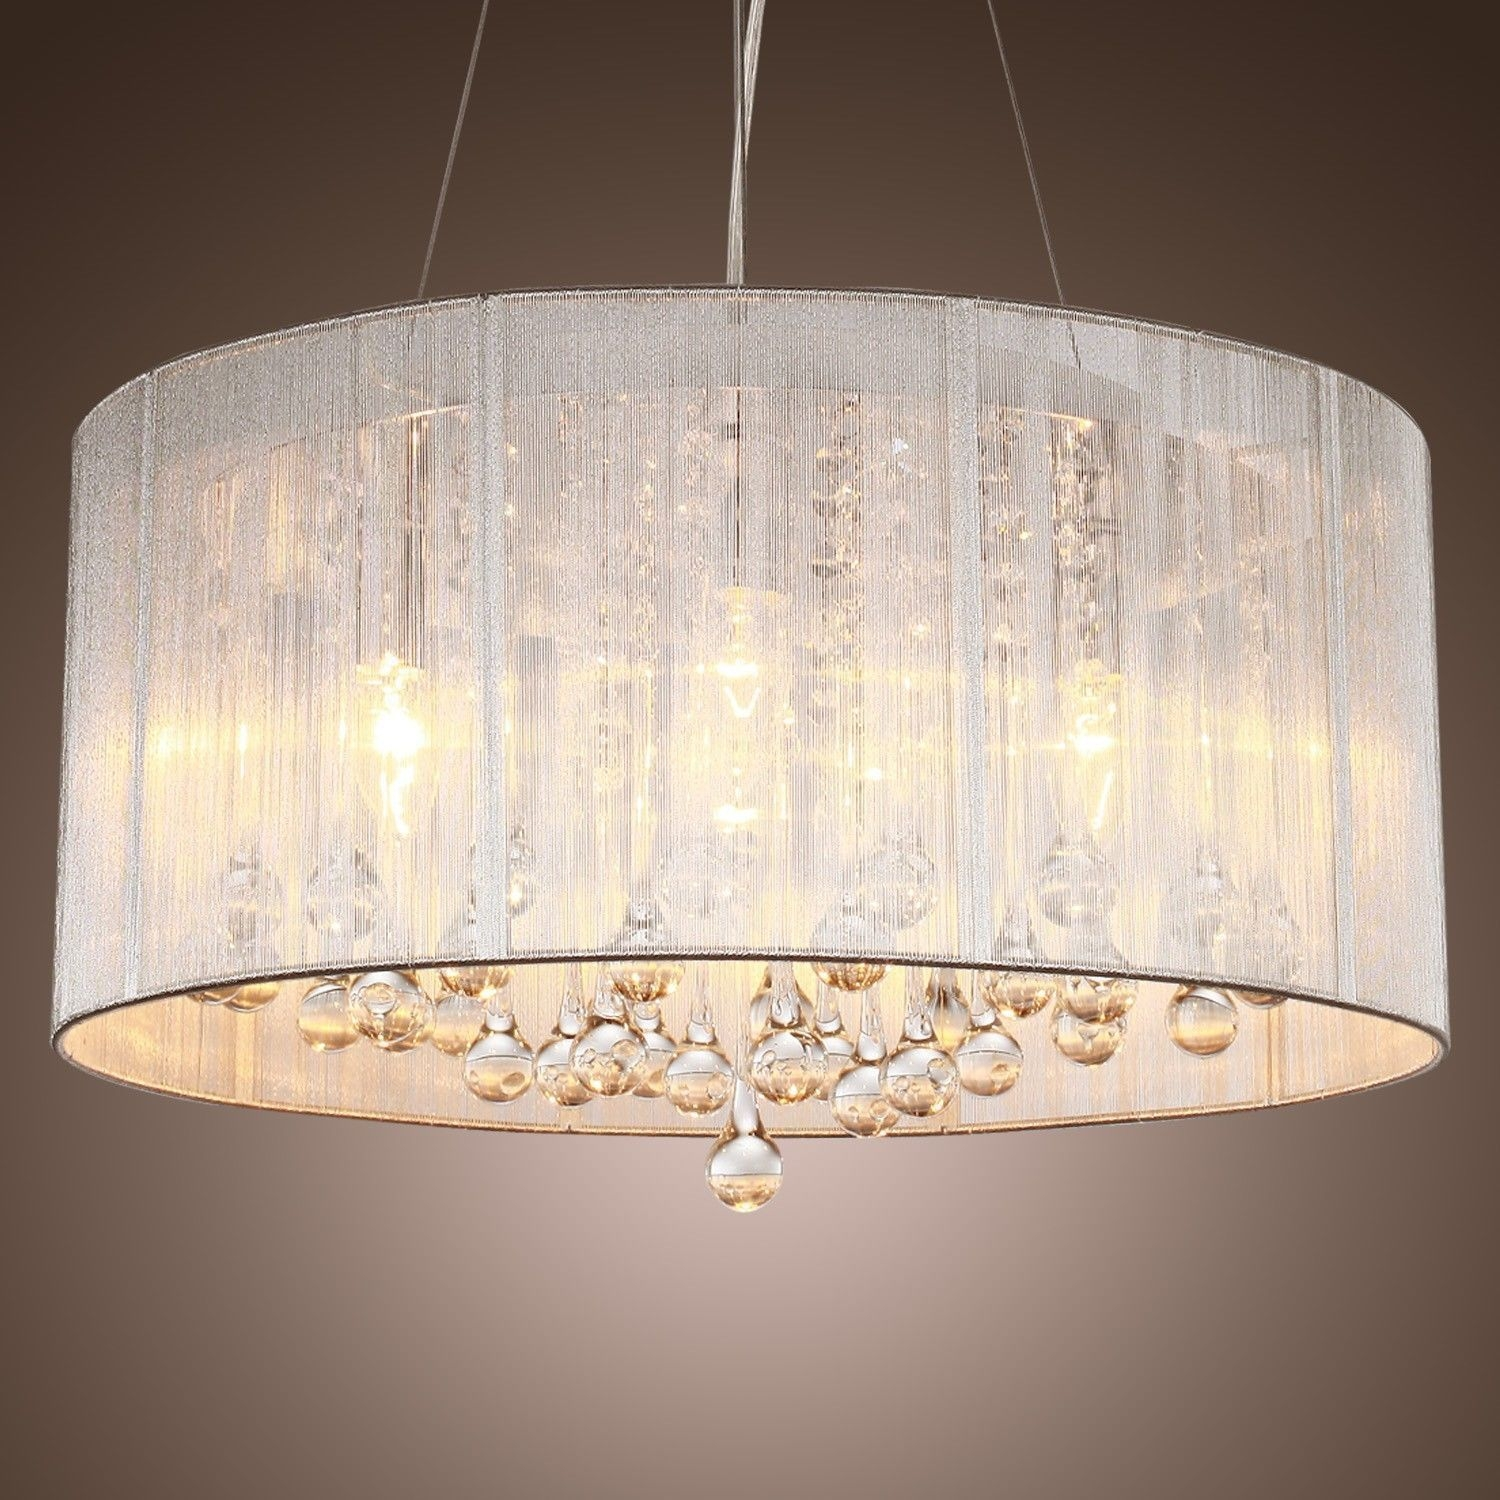 Innovative Drum Shade Chandeliers Best Home Decor Inspirations Pertaining To Fabric Drum Shade Chandeliers (Image 18 of 25)